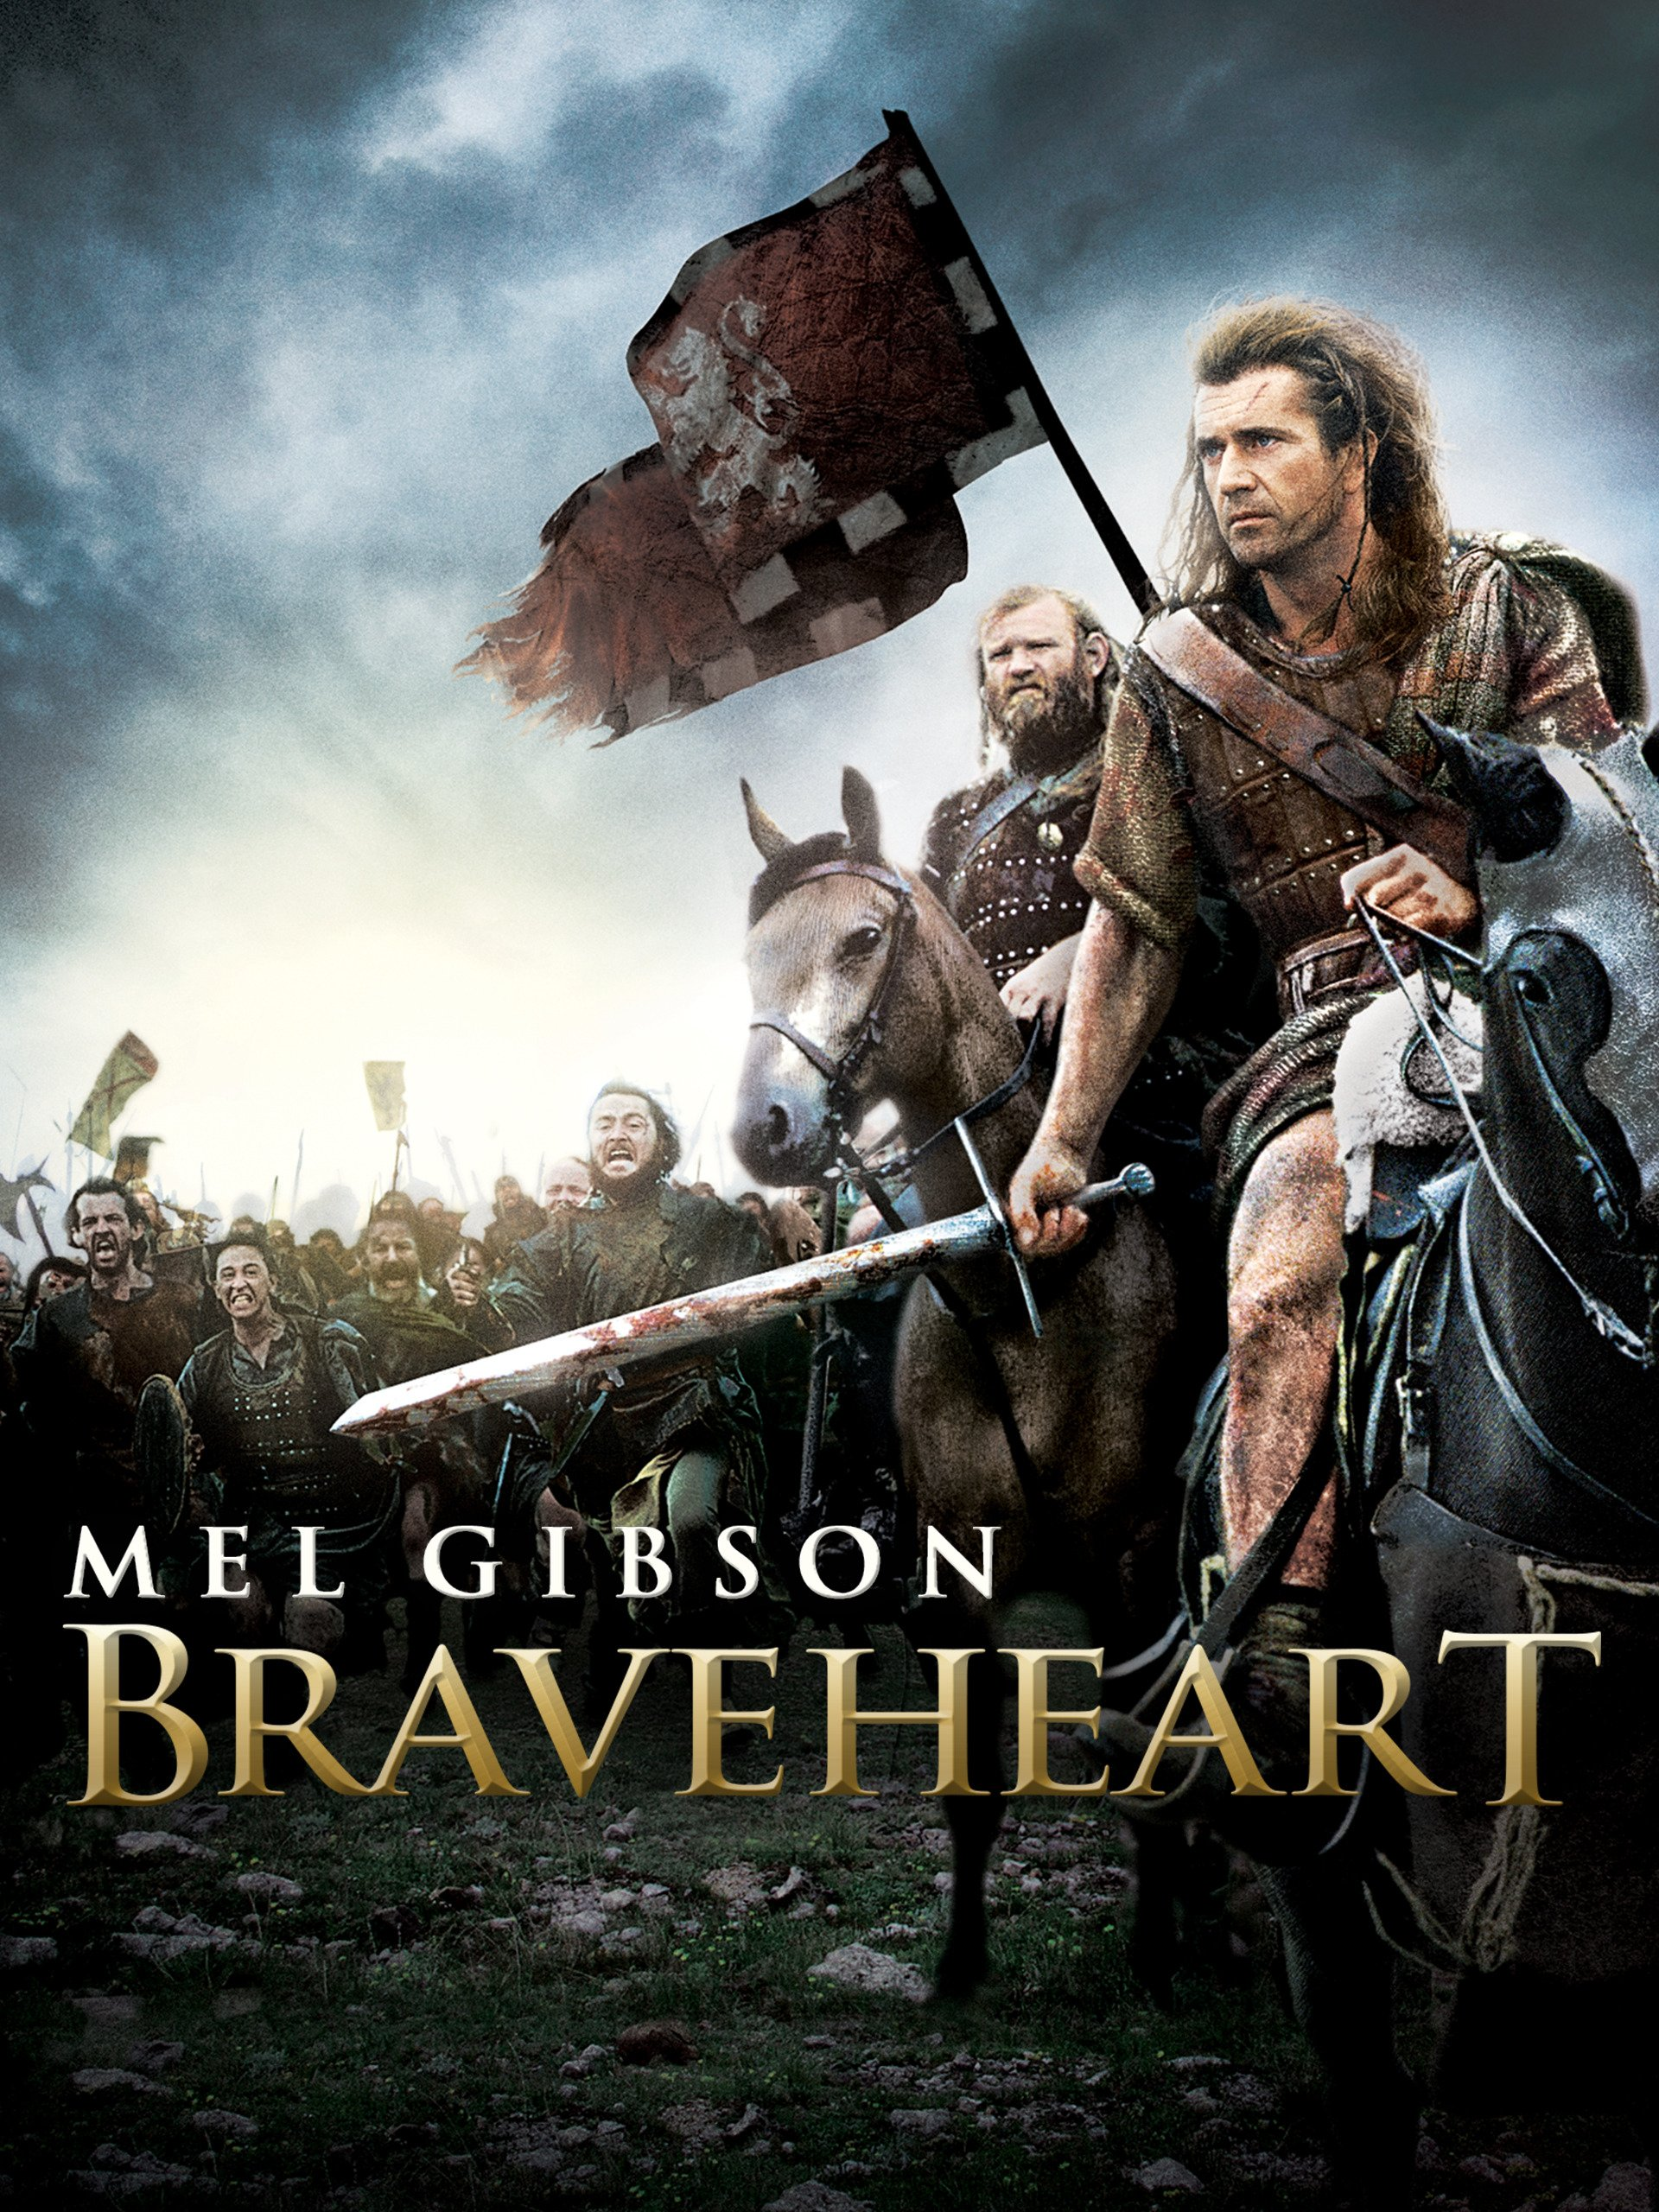 is braveheart based on a true story